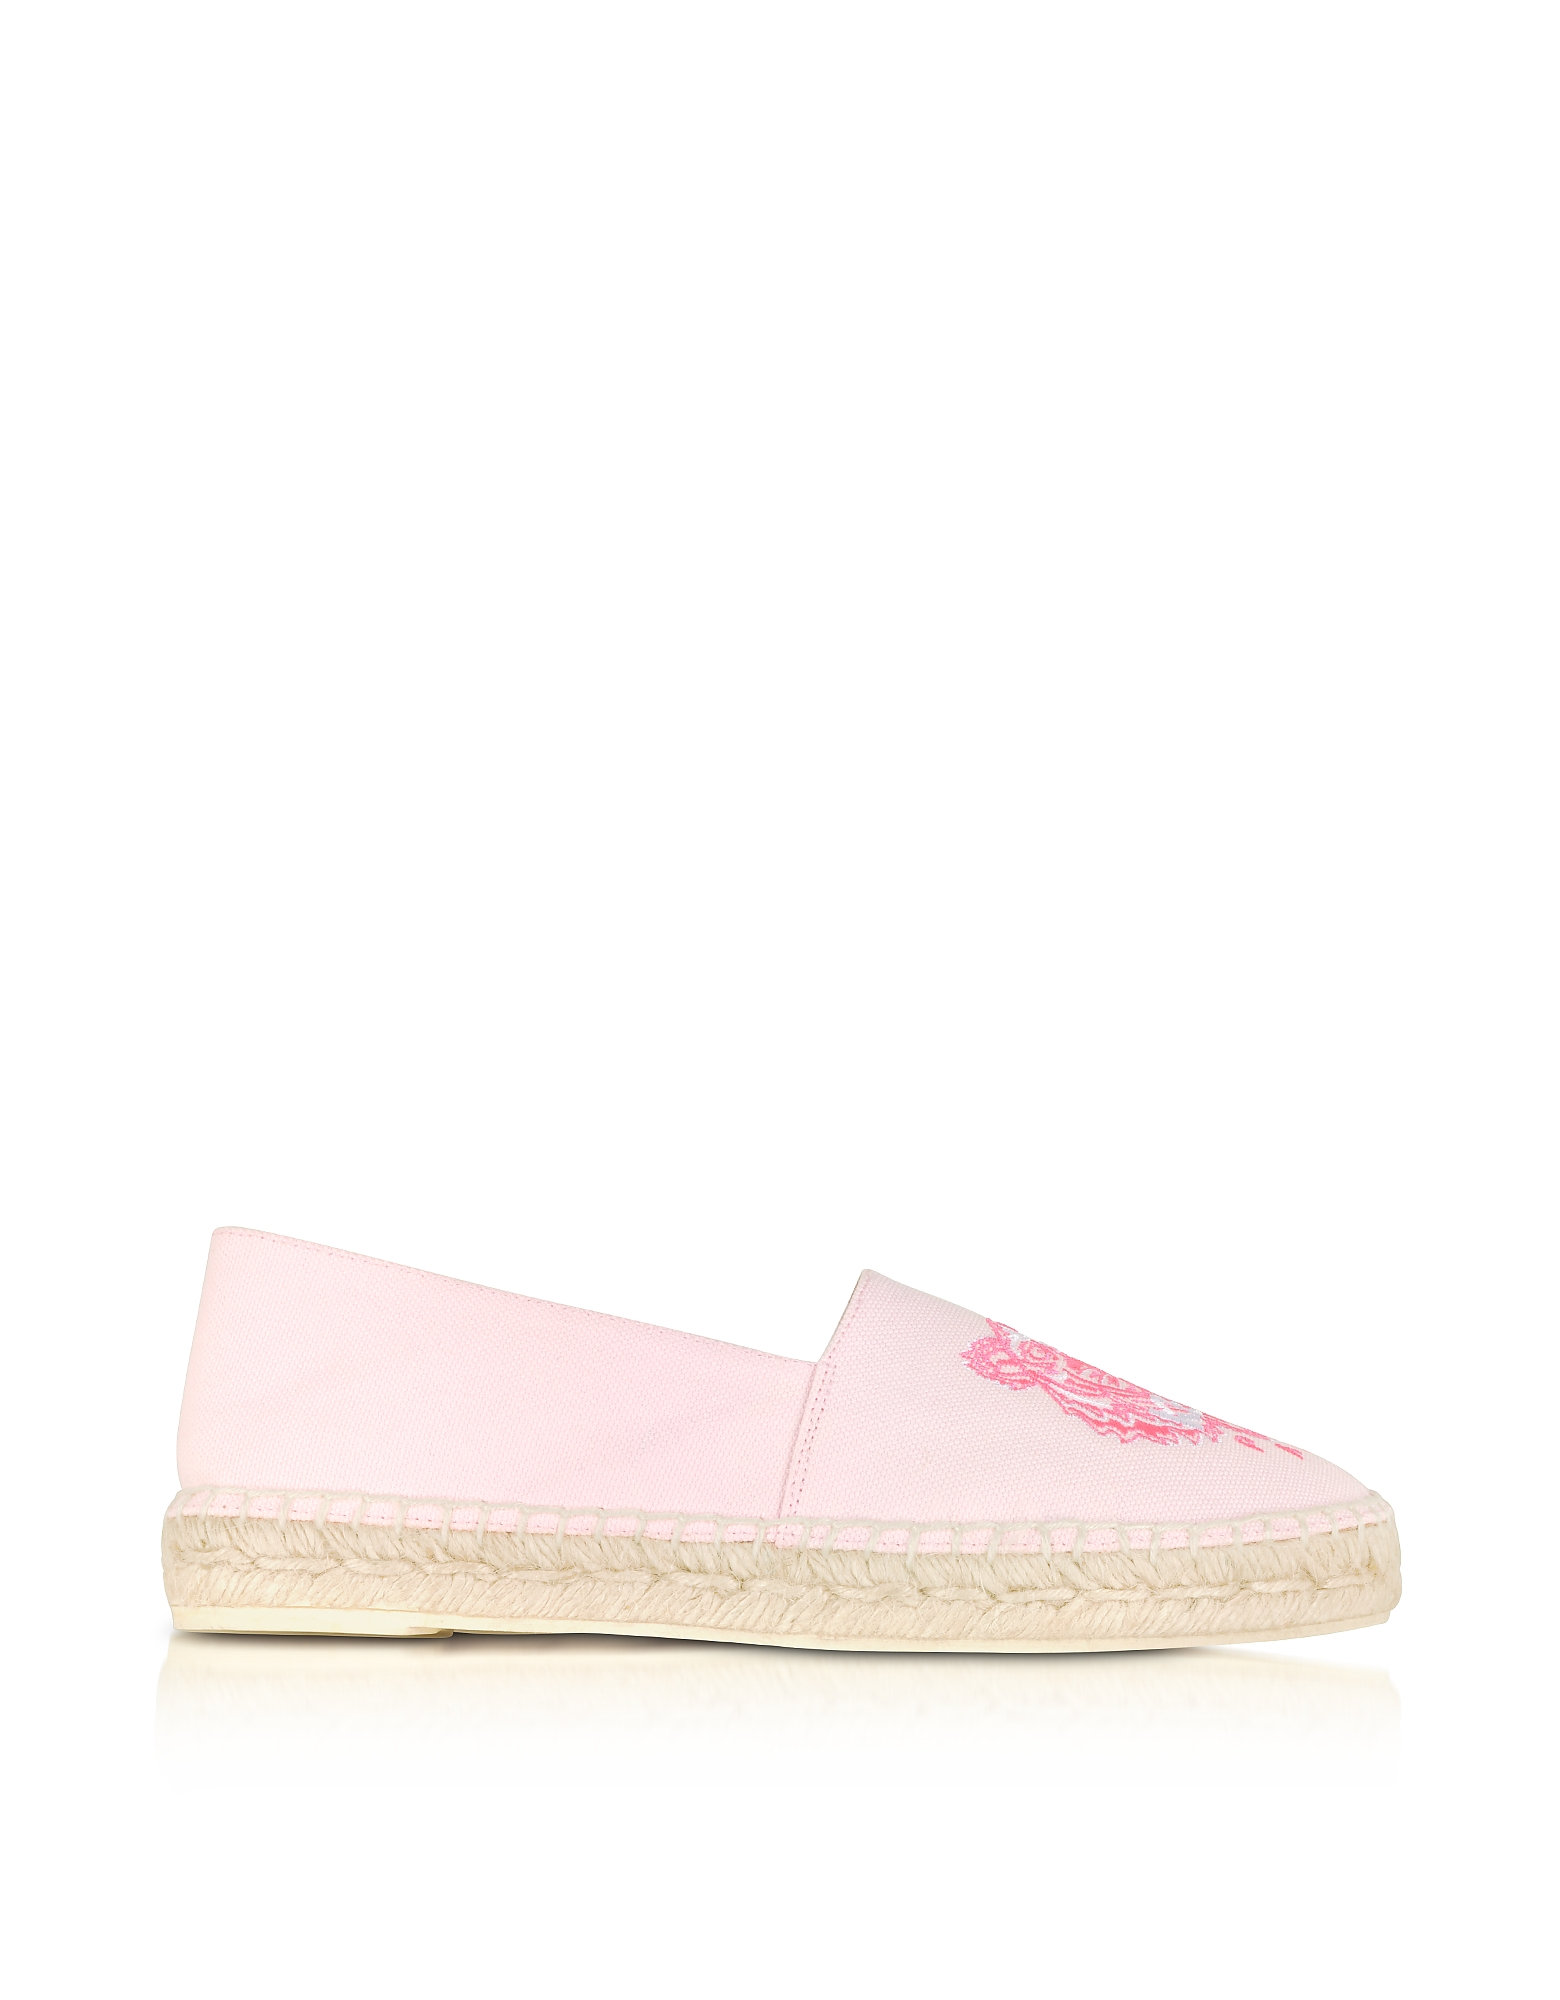 Kenzo Shoes, Pastel Pink Canvas and Jute Espadrilles